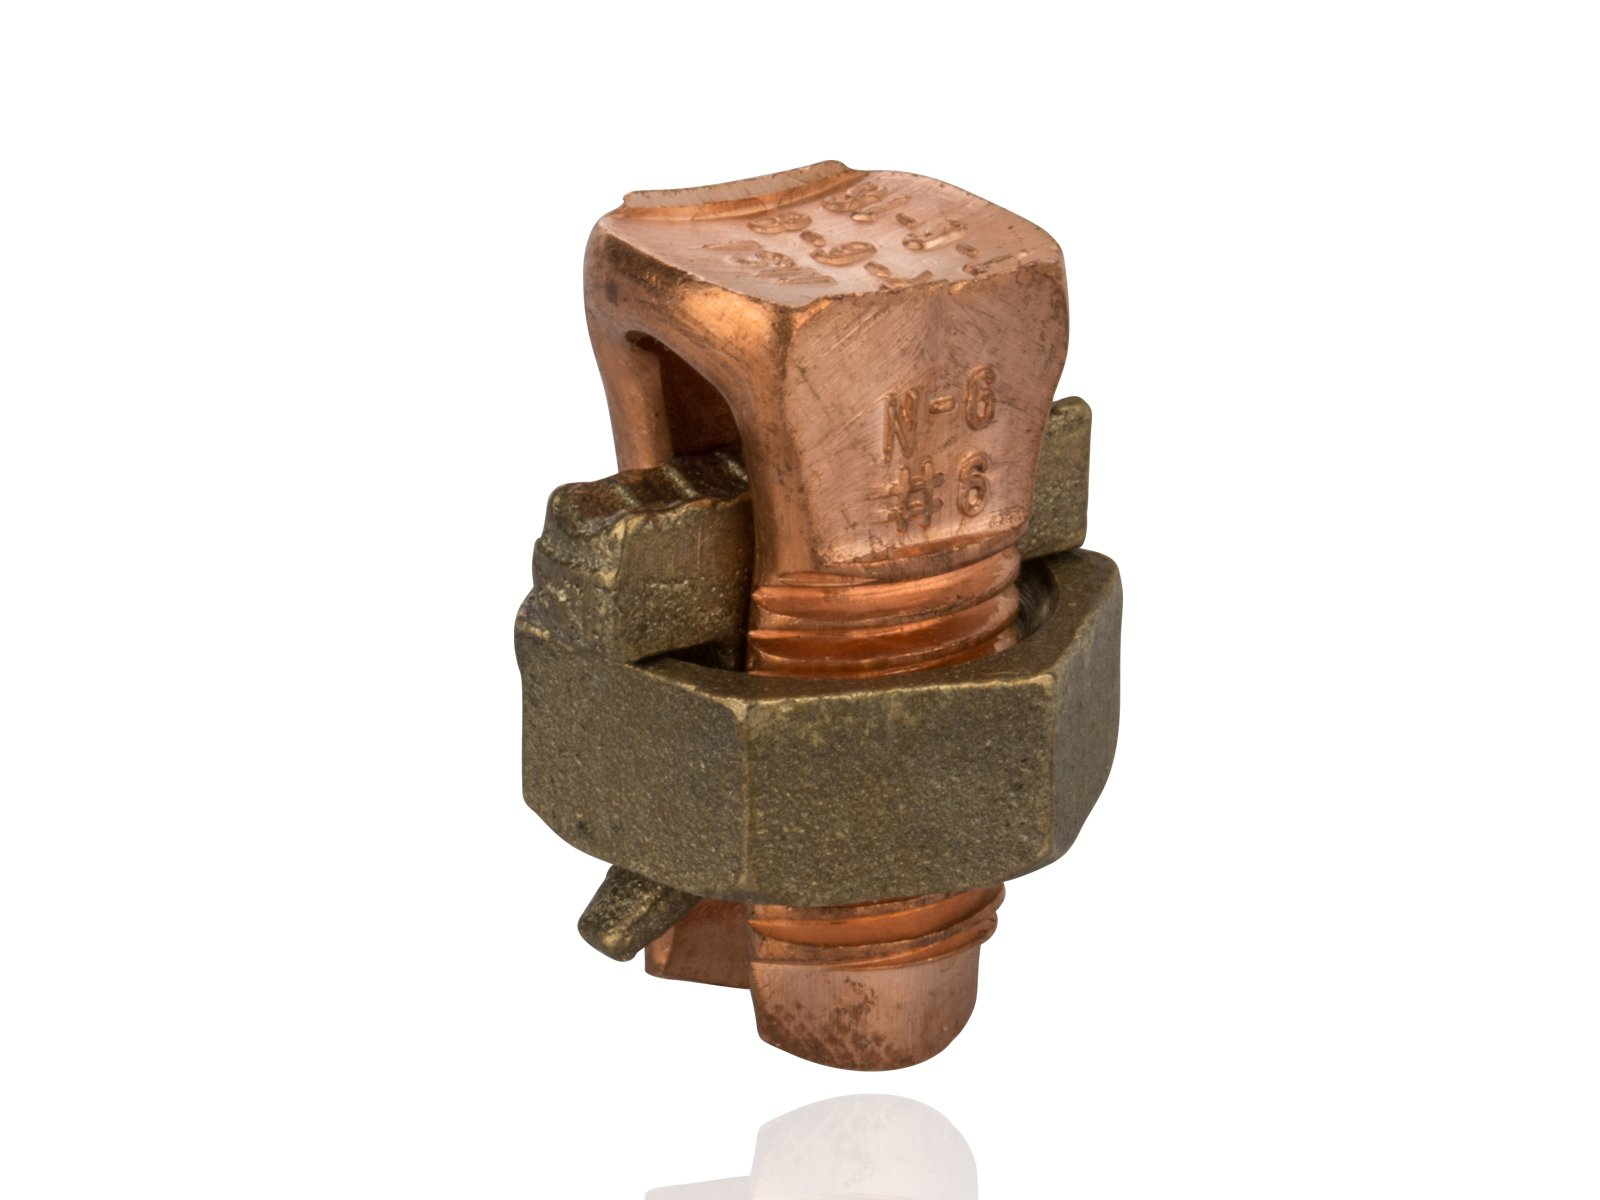 Split Bolt Connector For Copper and Copperweld Wires, 0.102'' - 0.162'' Wire Diameter Range, 165lbs Torque